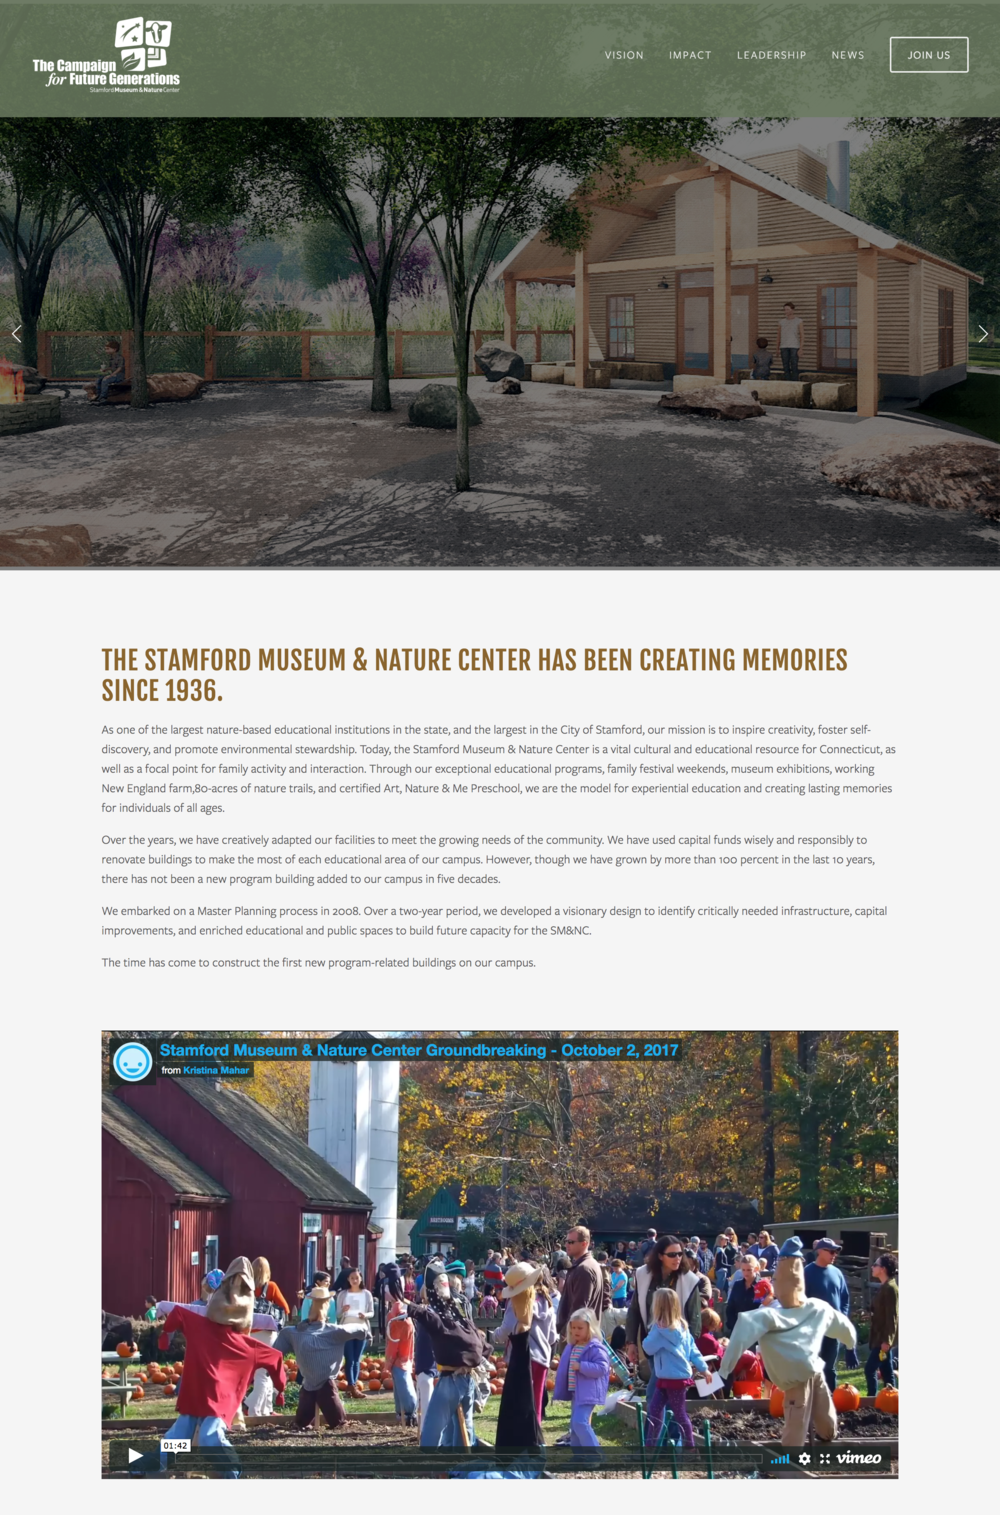 The Stamford Museum and Nature Center Non-Profit Website